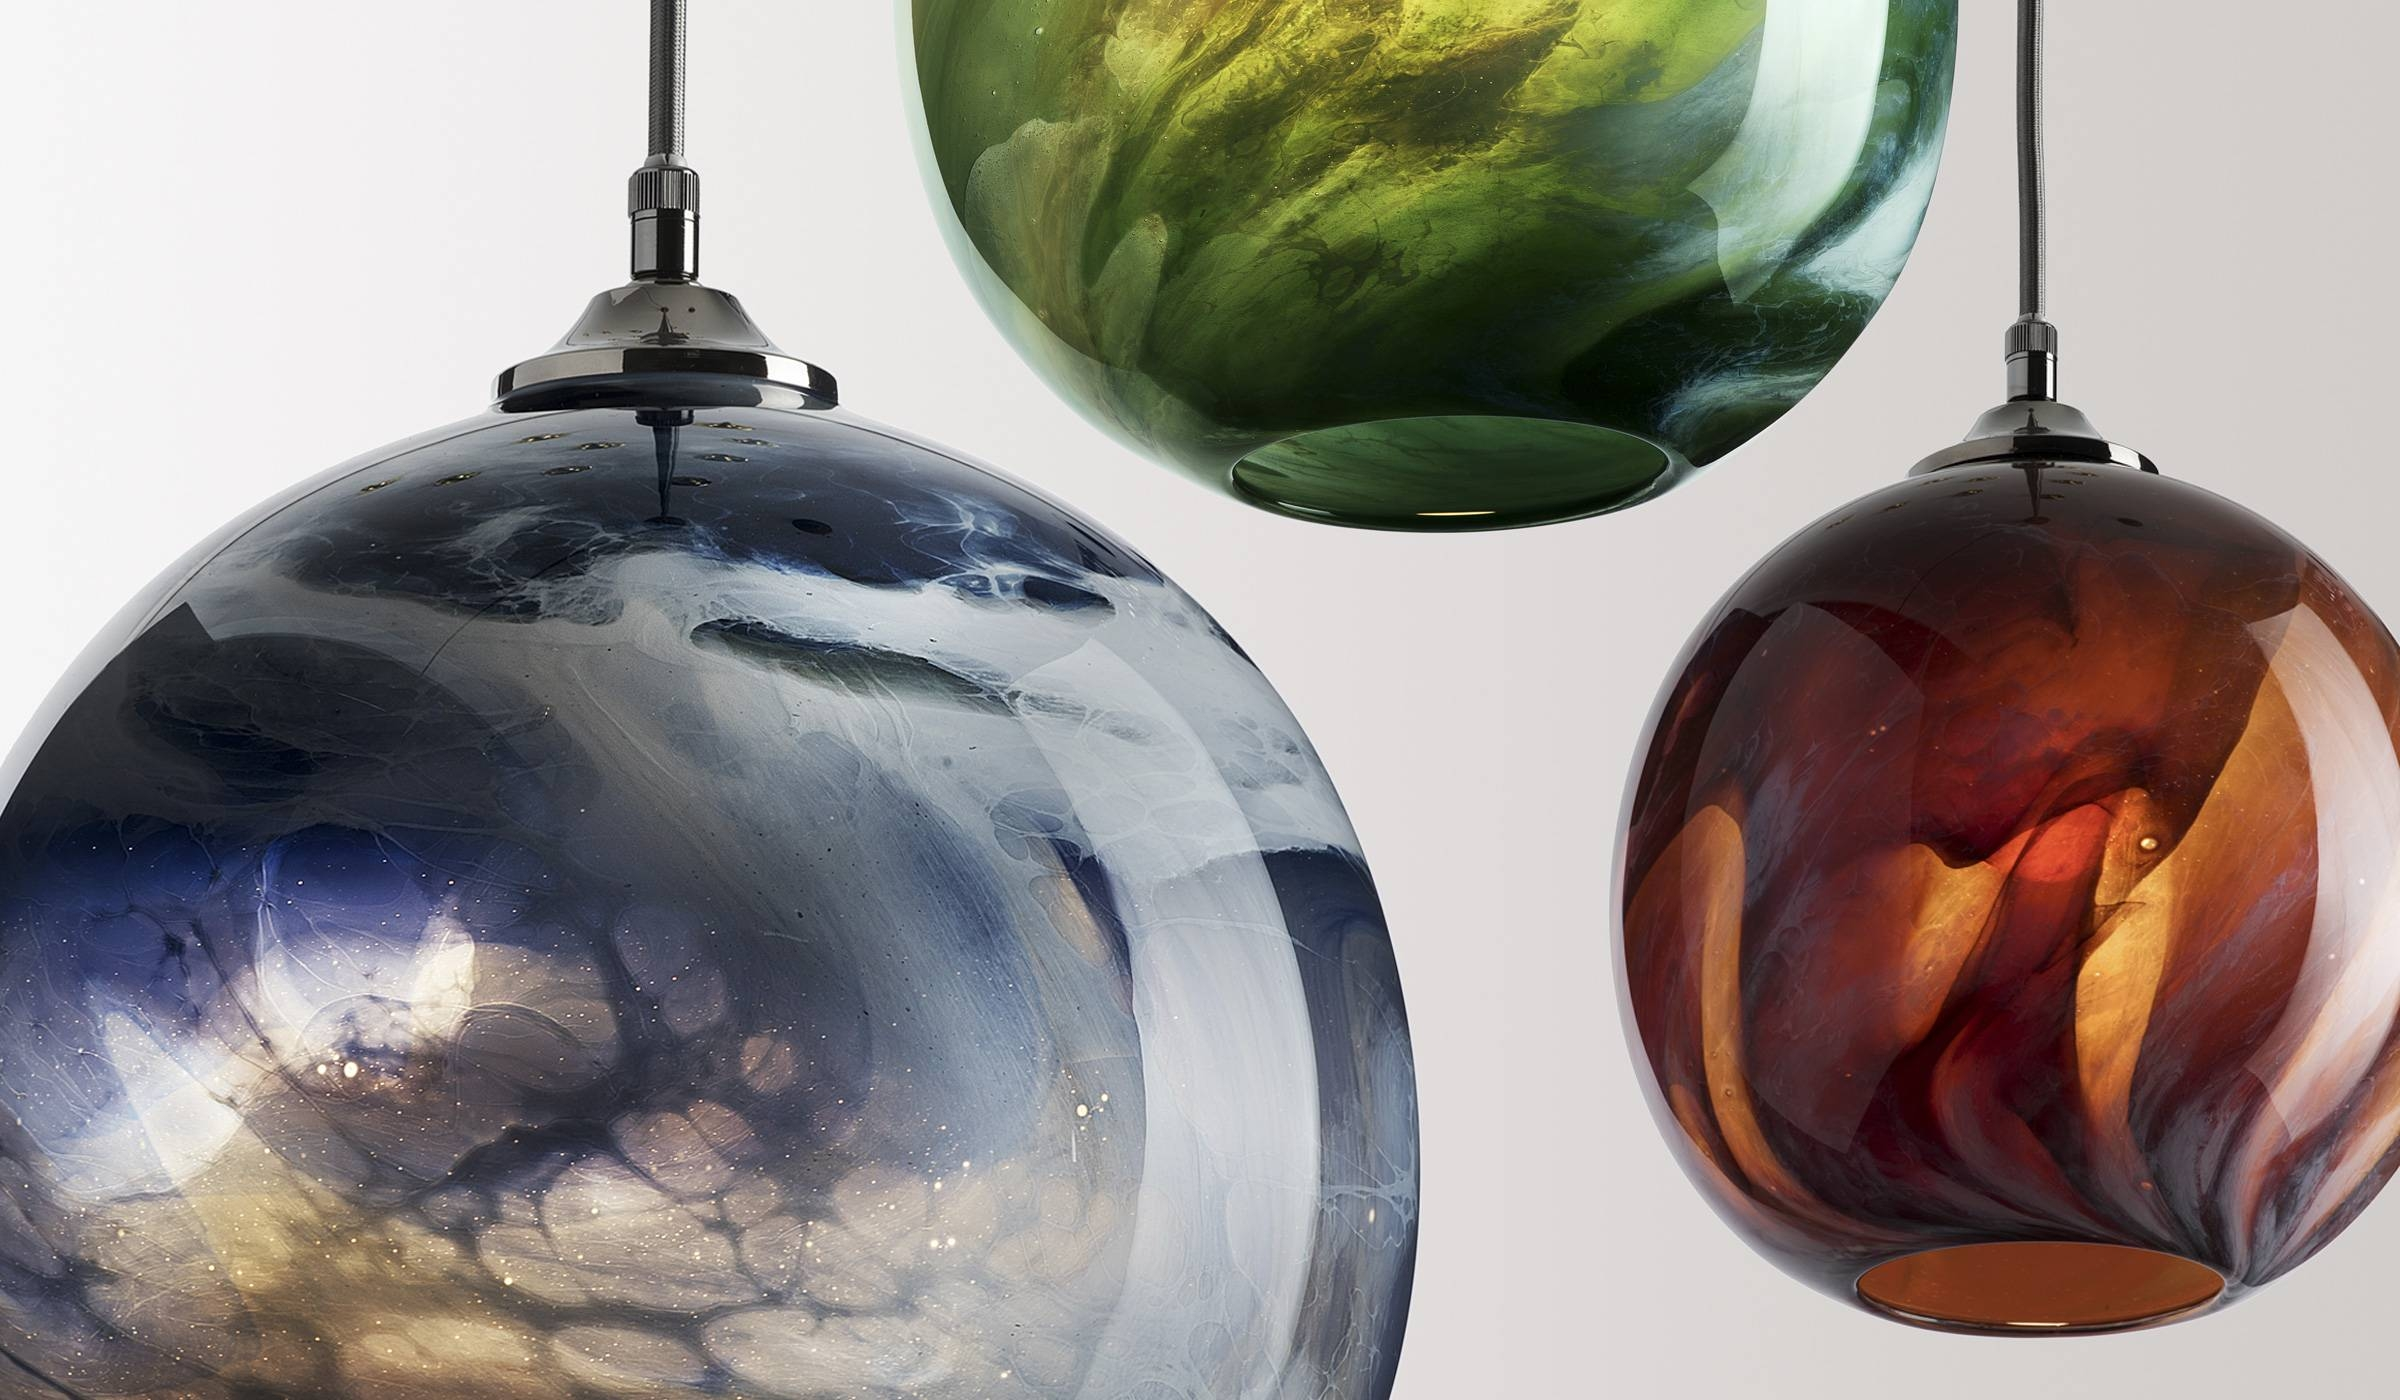 Glass Lighting – Rothschild & Bickers Intended For Coloured Glass Pendants (View 14 of 15)